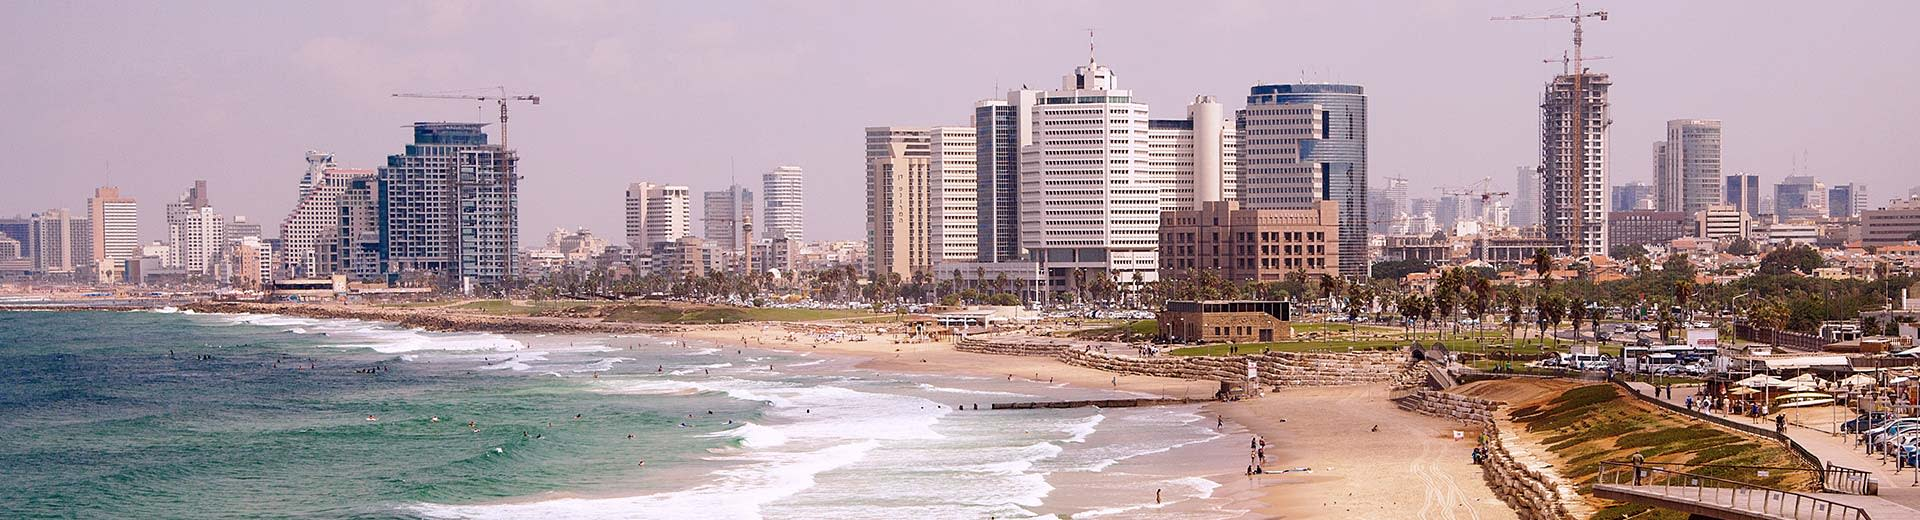 Under a cloudy Tel Aviv sky lie some generic looking skyscrapers and hotels, while a nearly empty beach is in the foreground